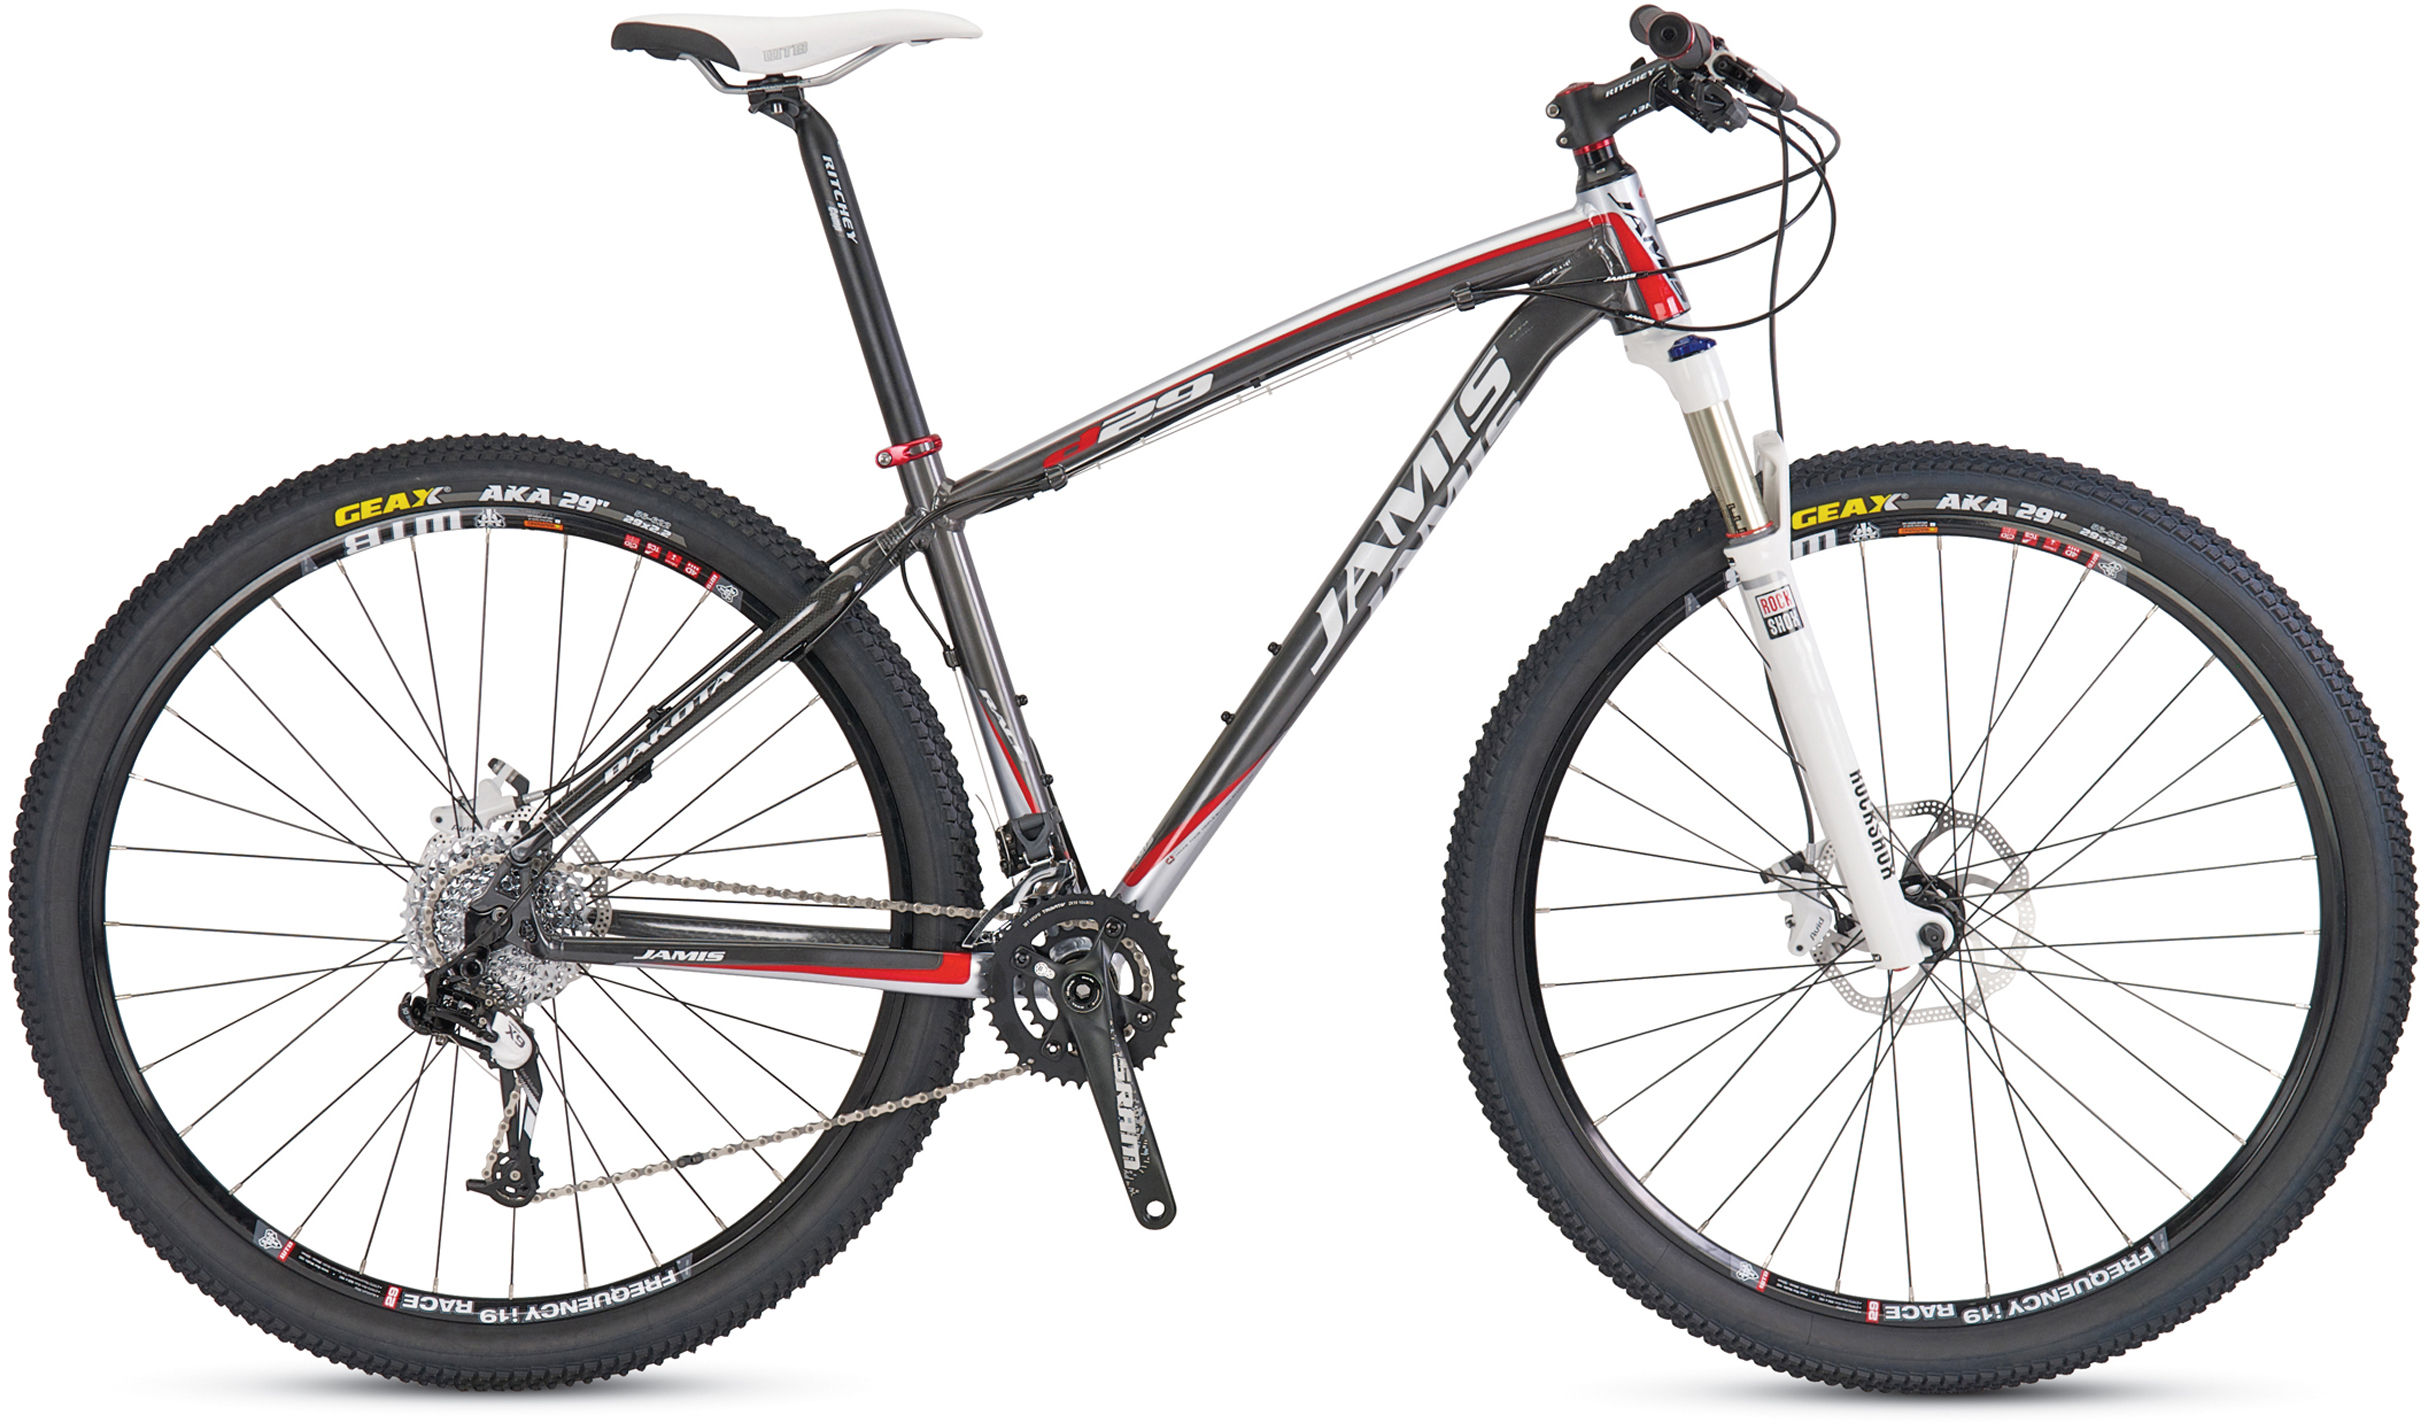 Mountain Bike Reviews: Mountain Bike Reviews Uk 2013